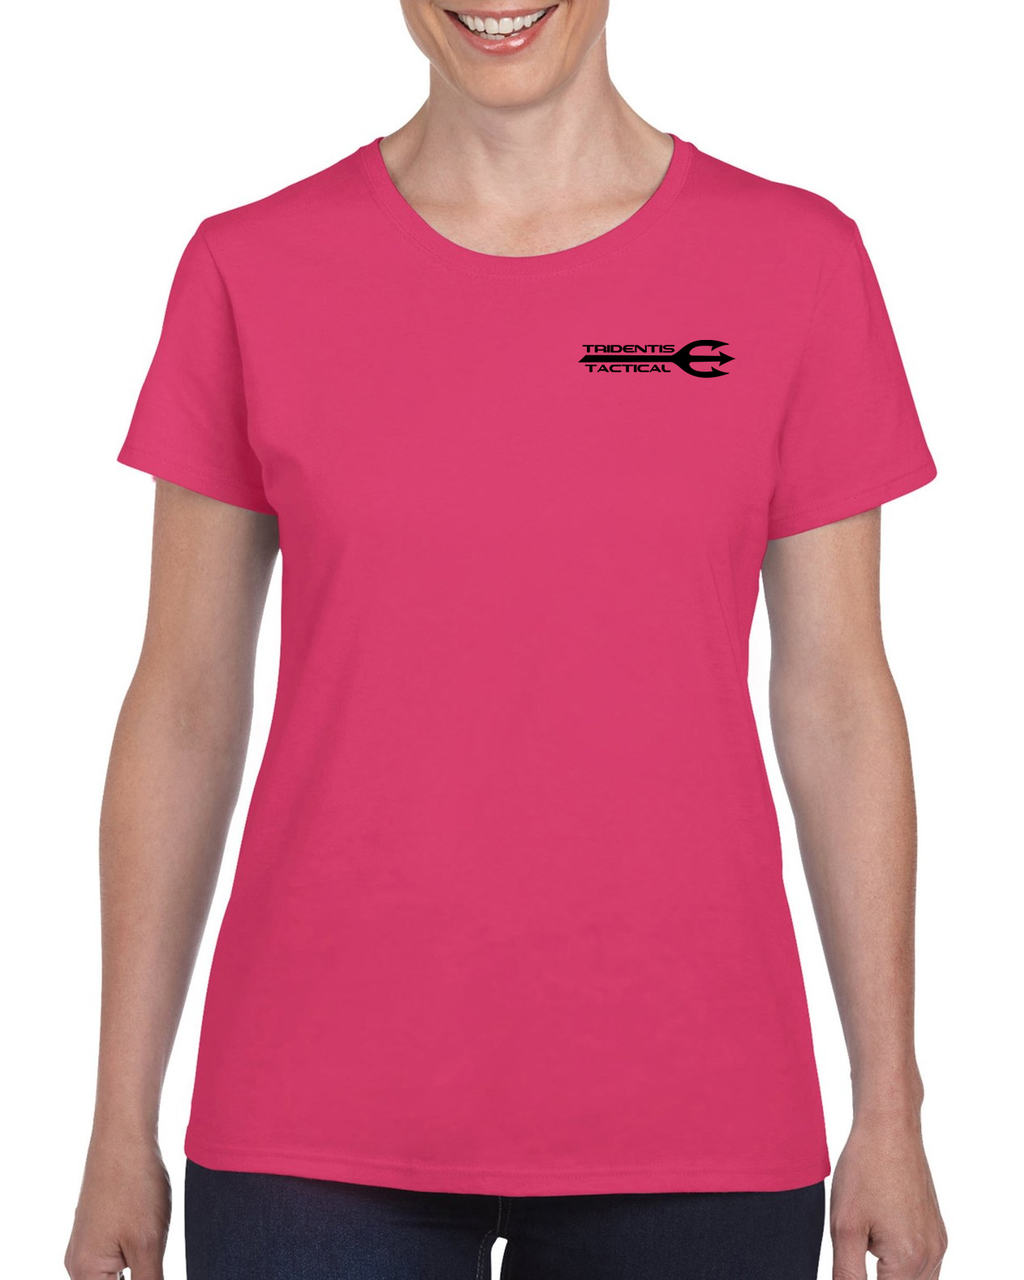 Tridentis Tactical Heliconia Pink Women's T-Shirt Black Logo and Lettering